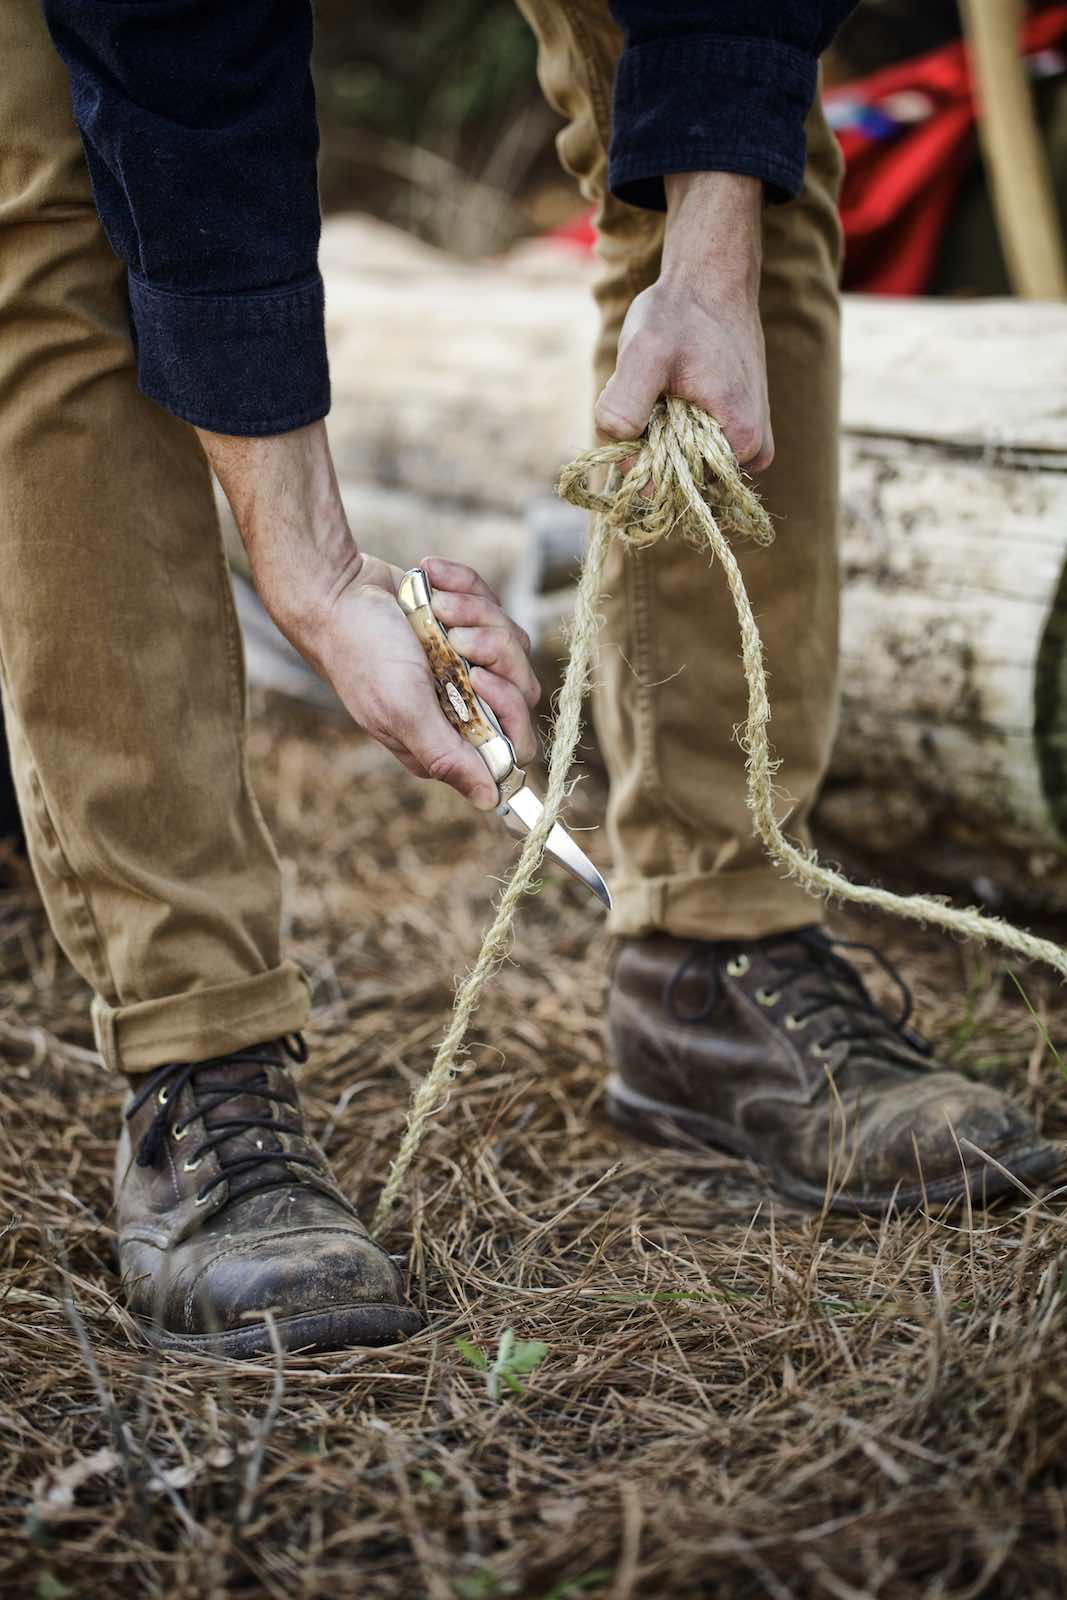 Jody Horton Photography - Man cutting rope using a Case knife.